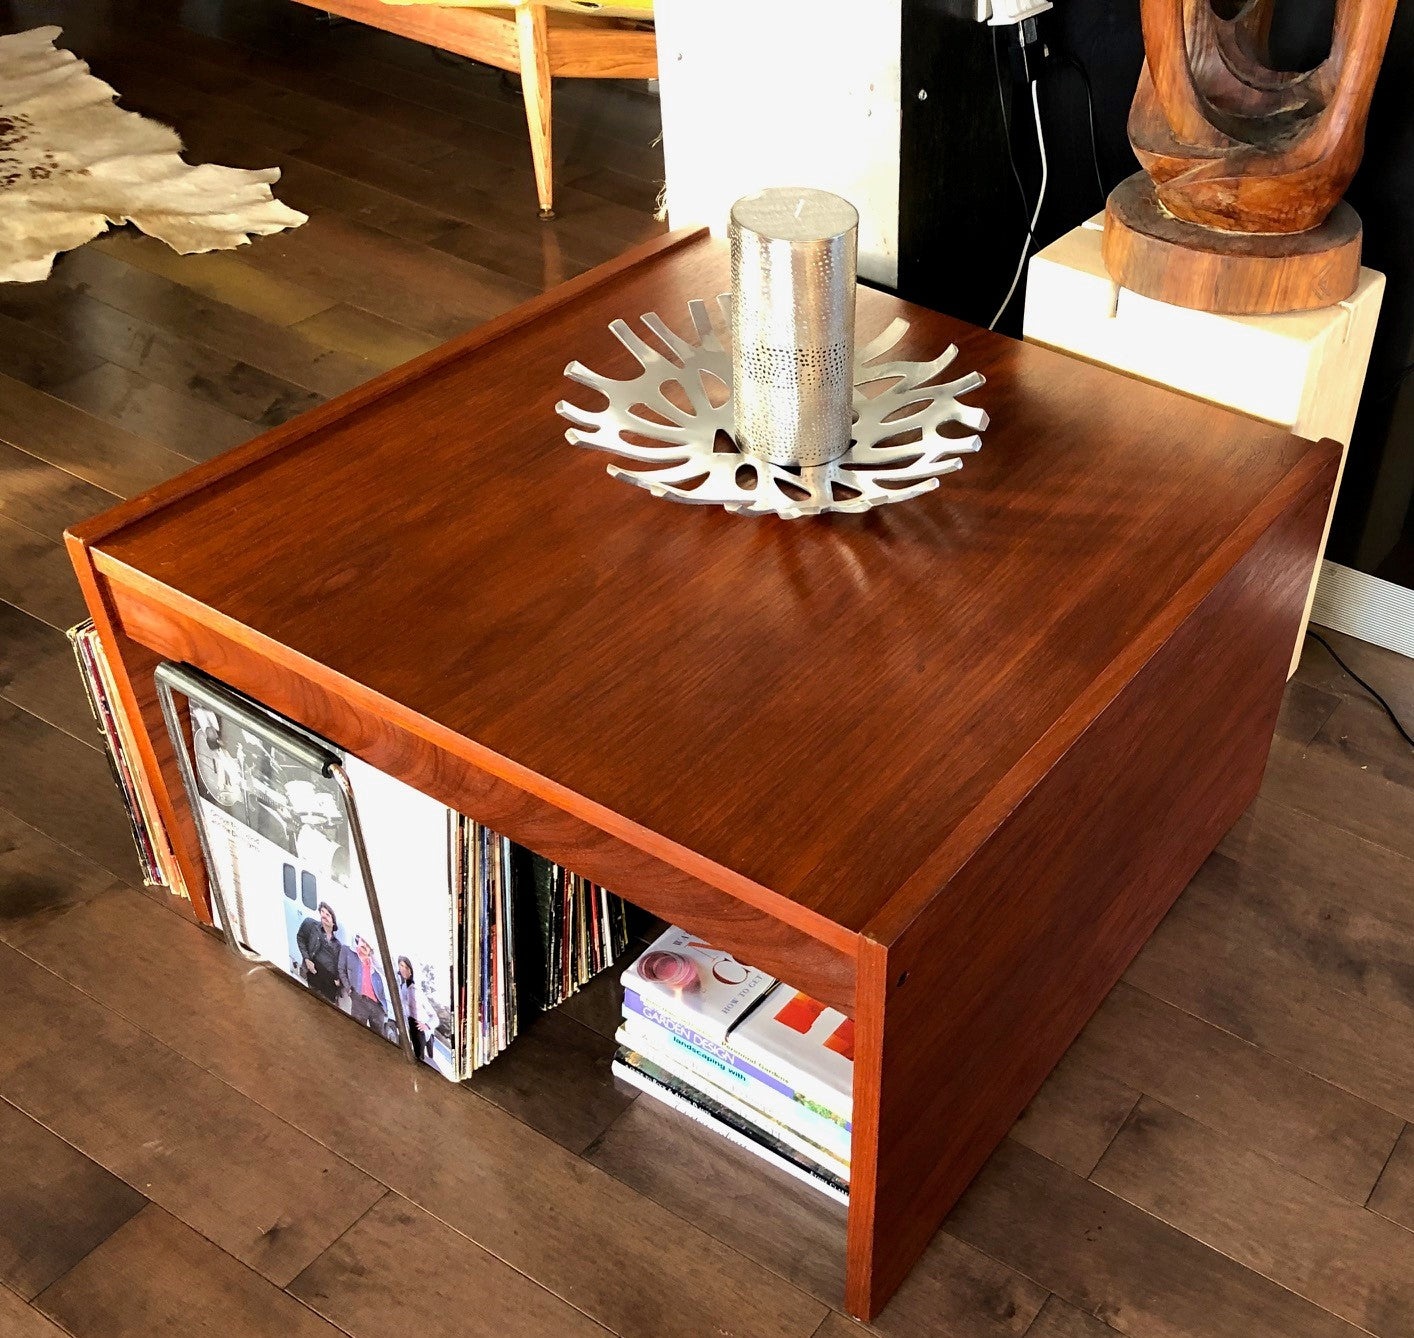 Sqaure Mid Century Modern Accent Chairs.Refinished Danish Mcm Teak Accent Or Coffee Table Large Square 30 Perfect